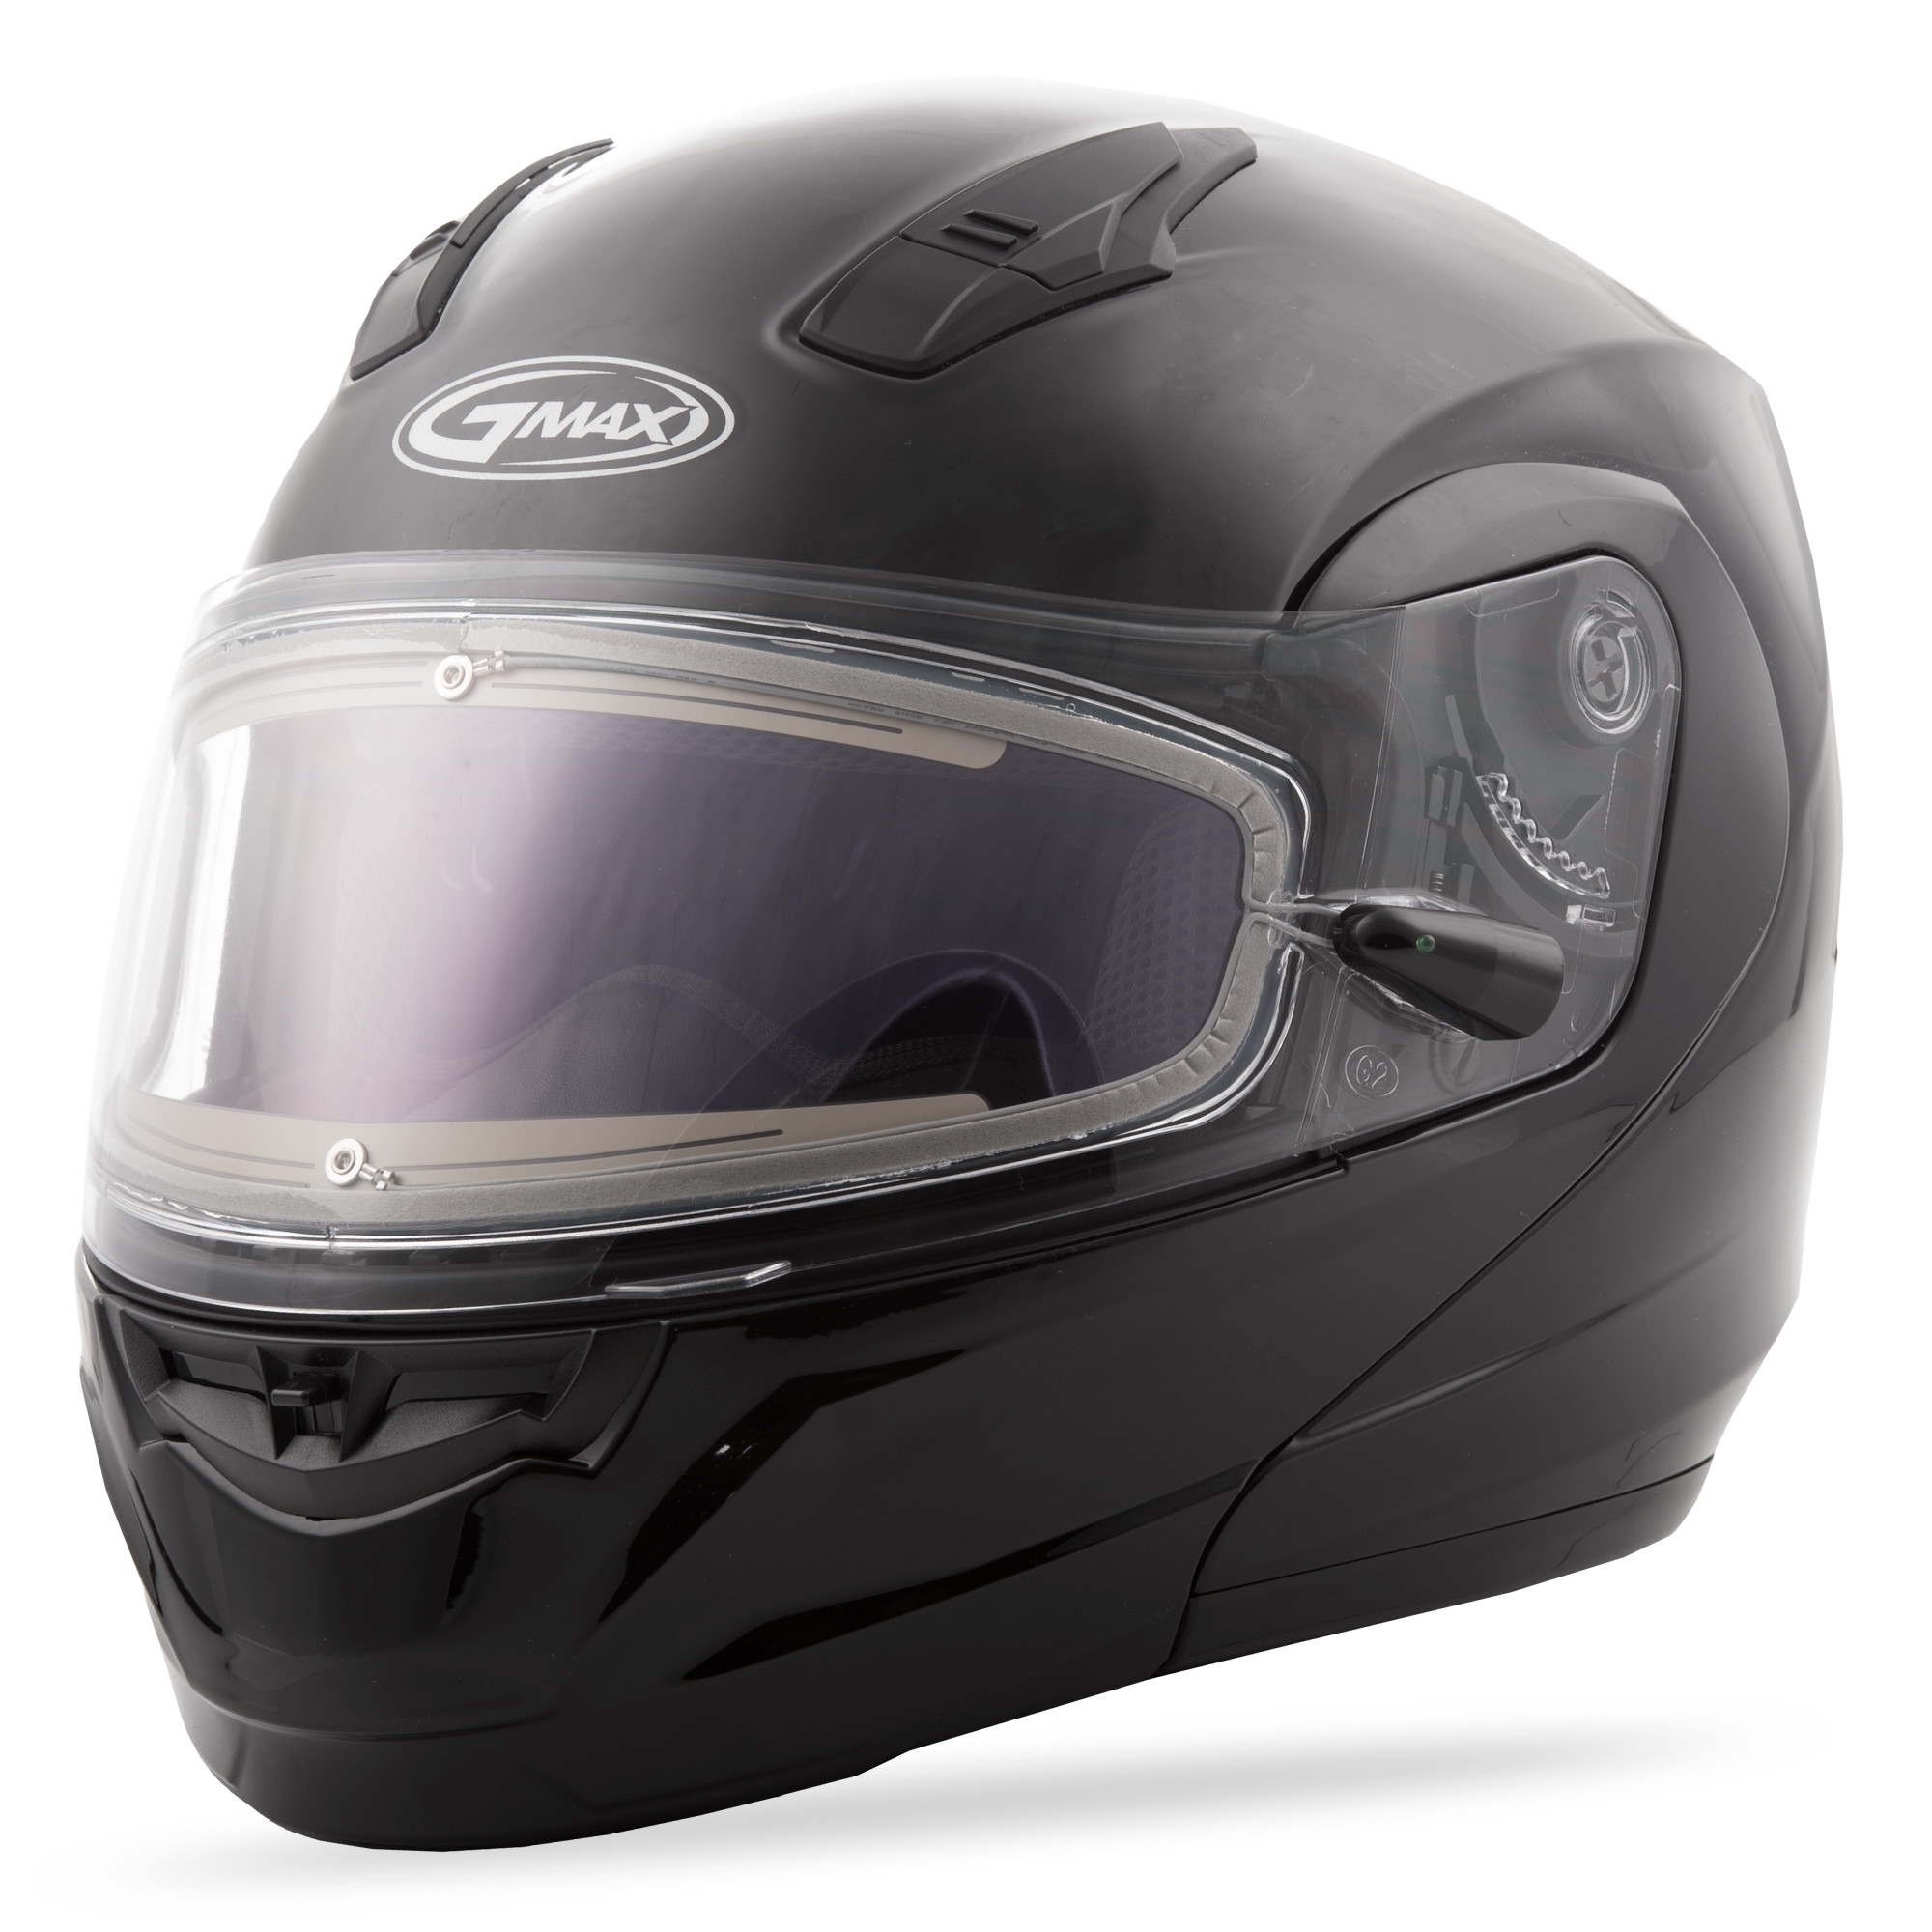 MD-04S Snow Helmet Solid w/Electric Shield